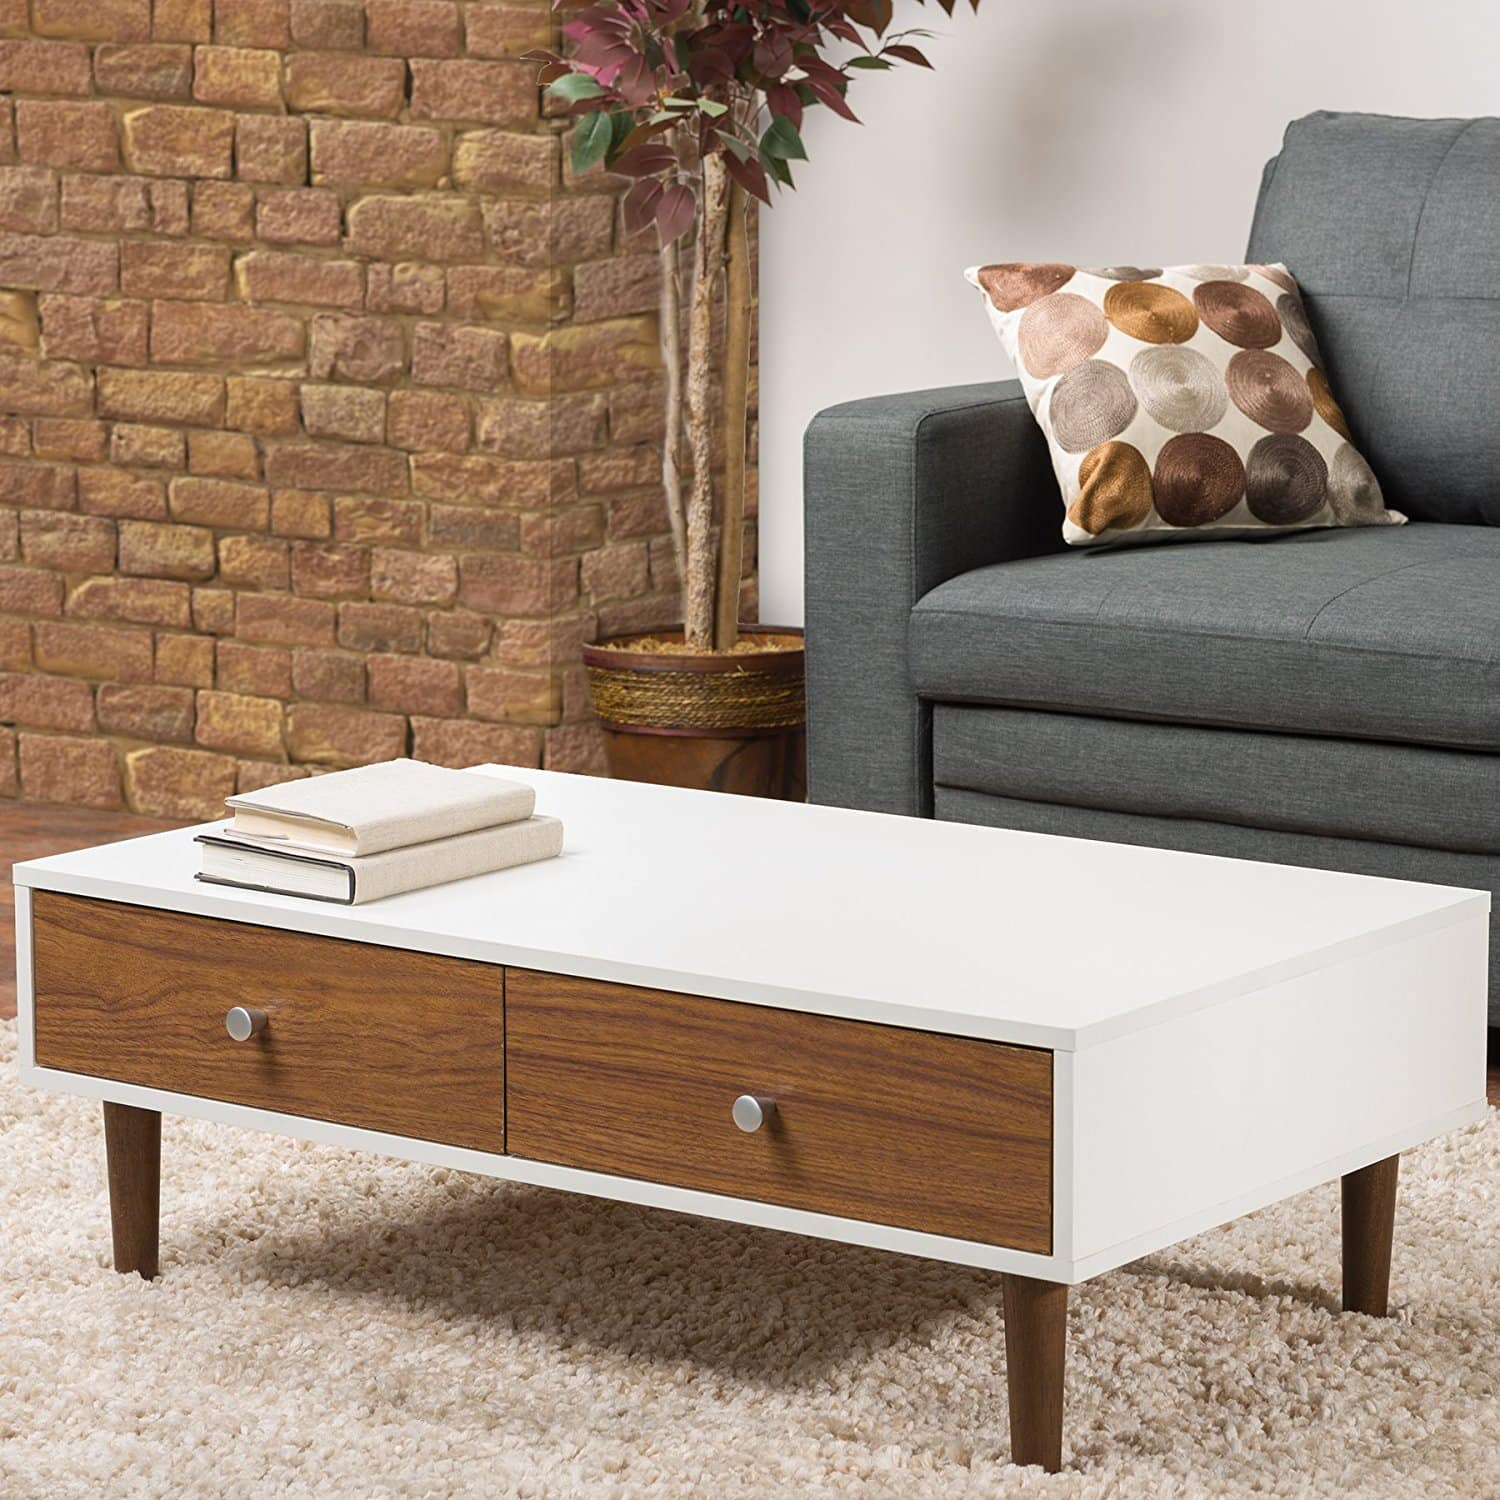 Cheap coffee tables under 100 that work for every style Round coffee table in living room